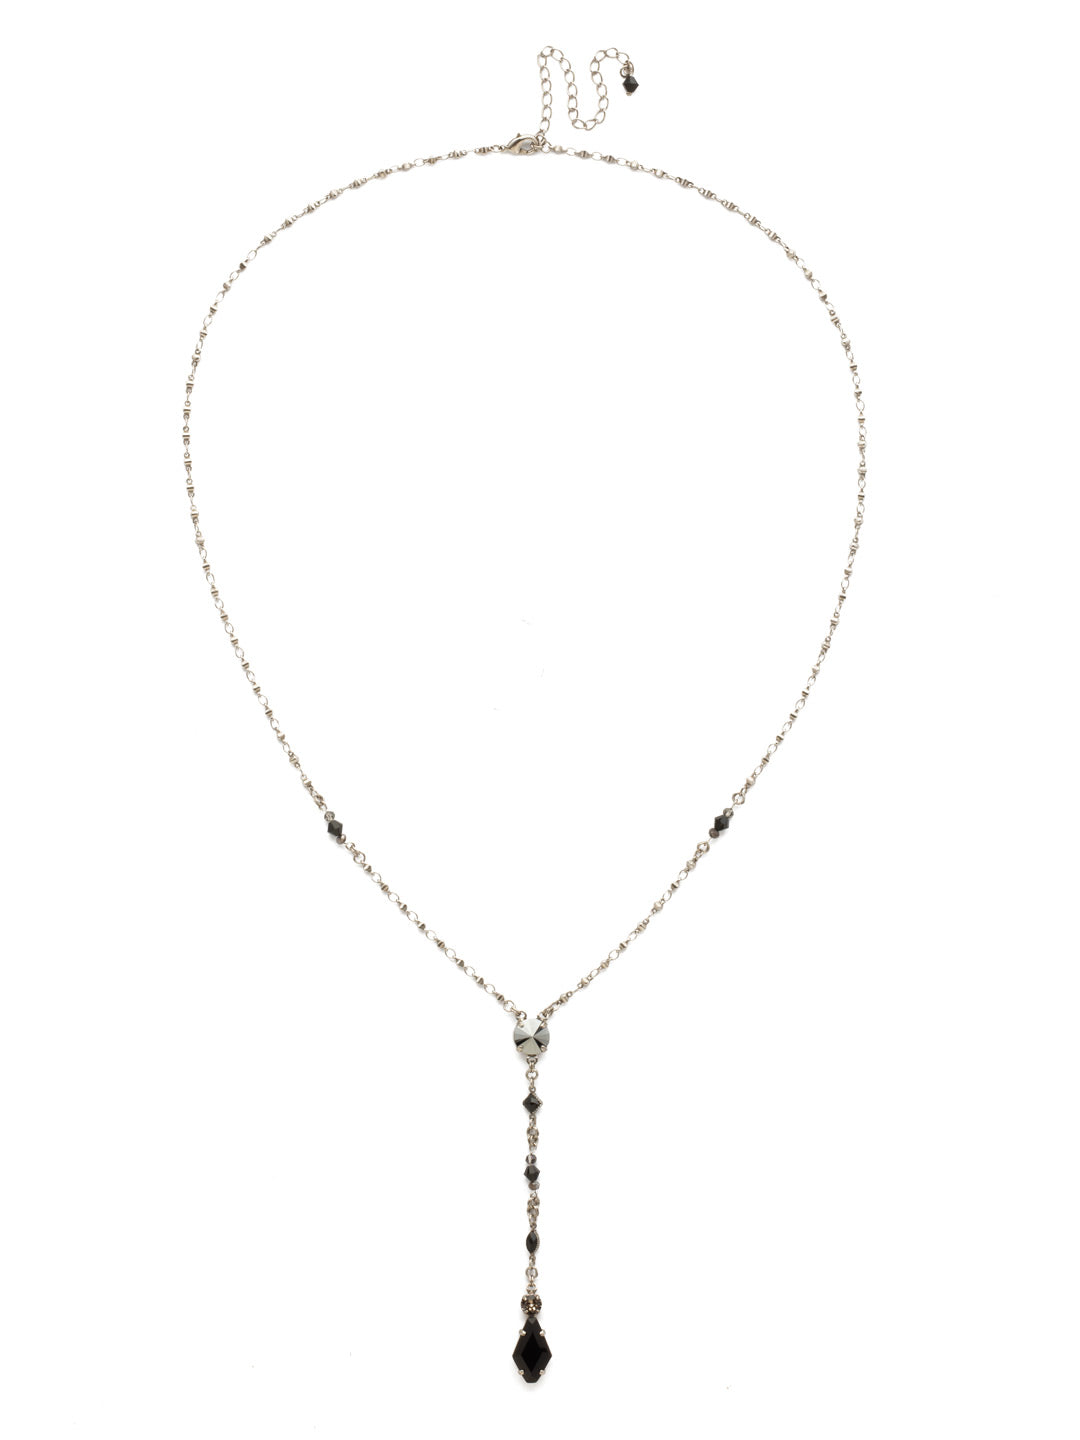 Regal Rhombus Y Pendant Necklace - NDK76ASBON